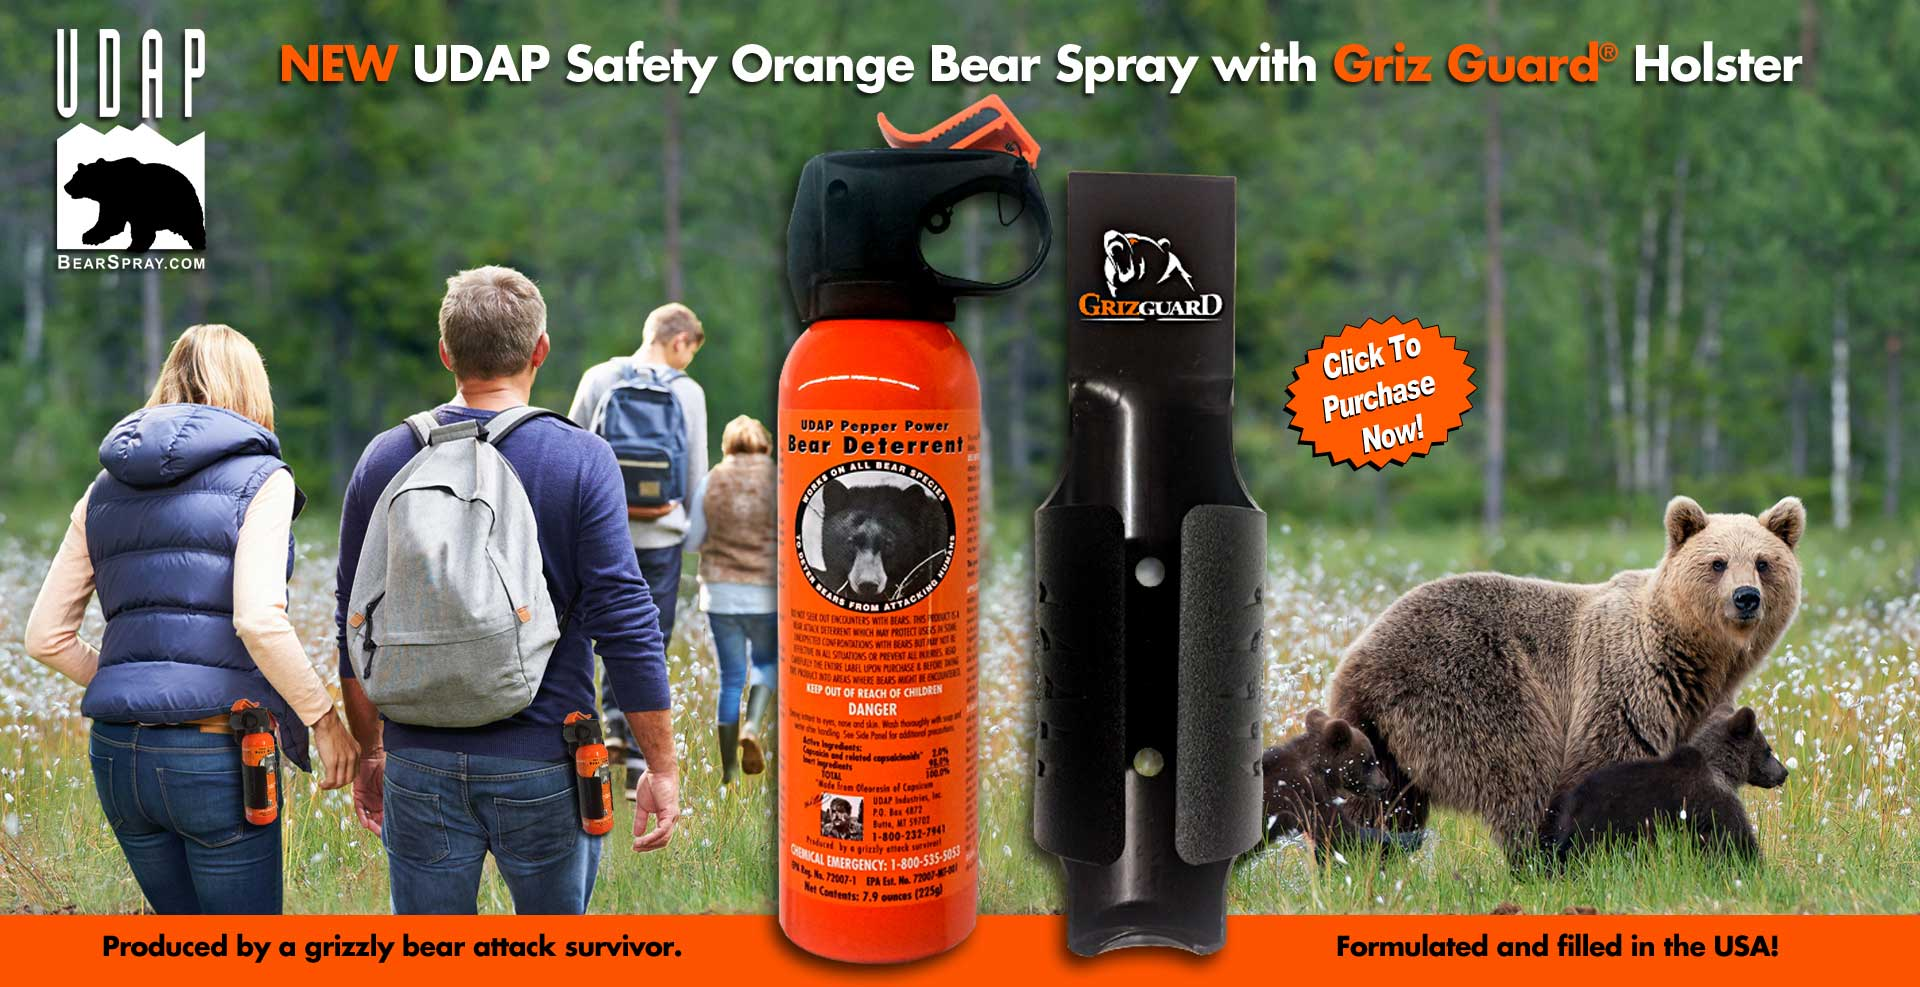 3 UDAP Pepper Spray Black Hard Case Key Chains By Makers Of Bear Spray